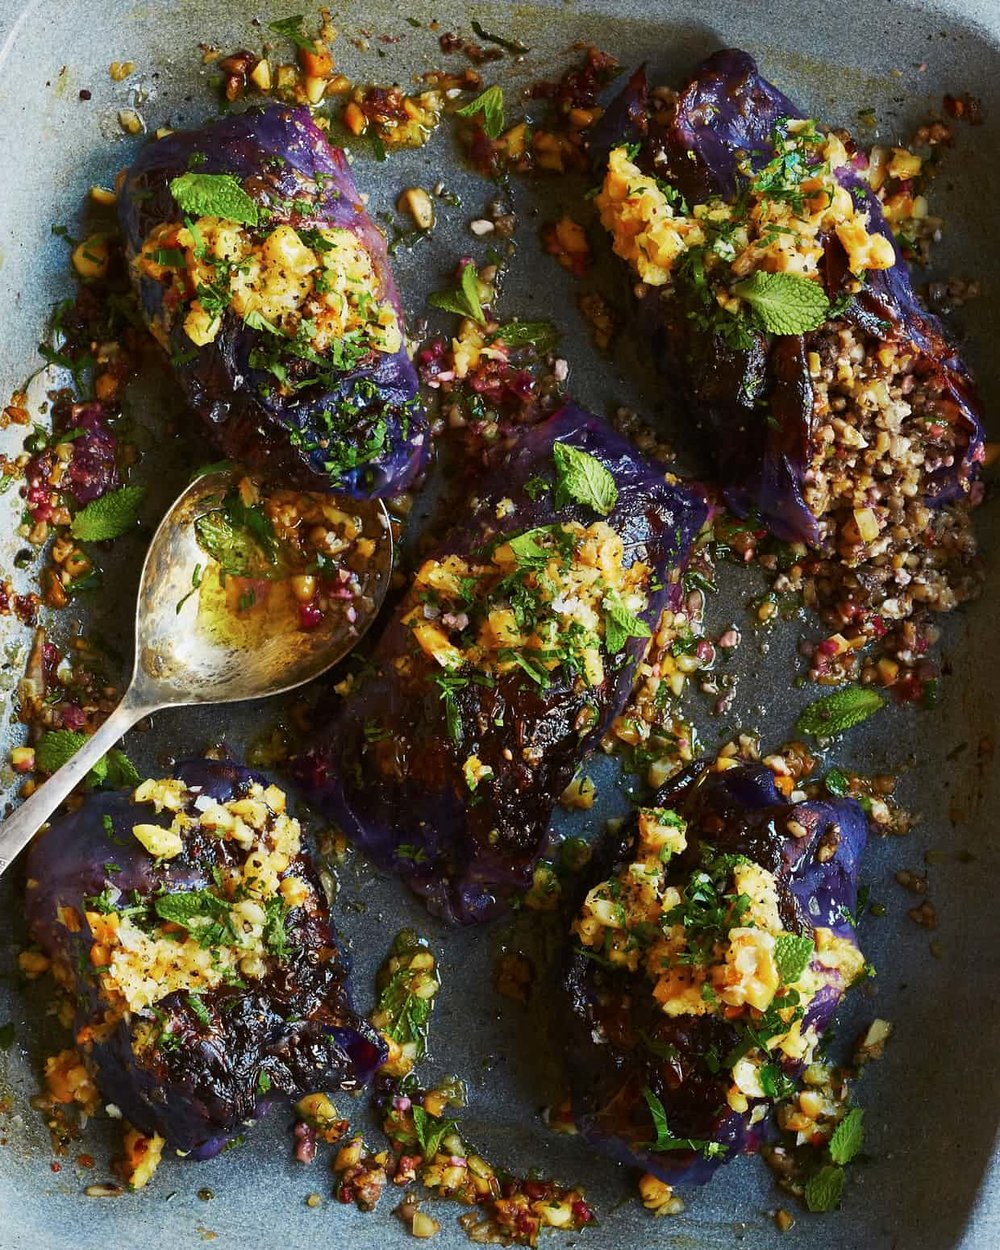 RED CABBAGE PARCELS WITH MACADAMIAS, MUSHROOMS AND CHESTNUTS   Creamy, sweet and herby all at once- these parcels are an amazing healthy alternative to a more traditional Christmas canape! The combination of bulgar wheat, sweet red onions and creamy nutty flavours is just too tasty for words!